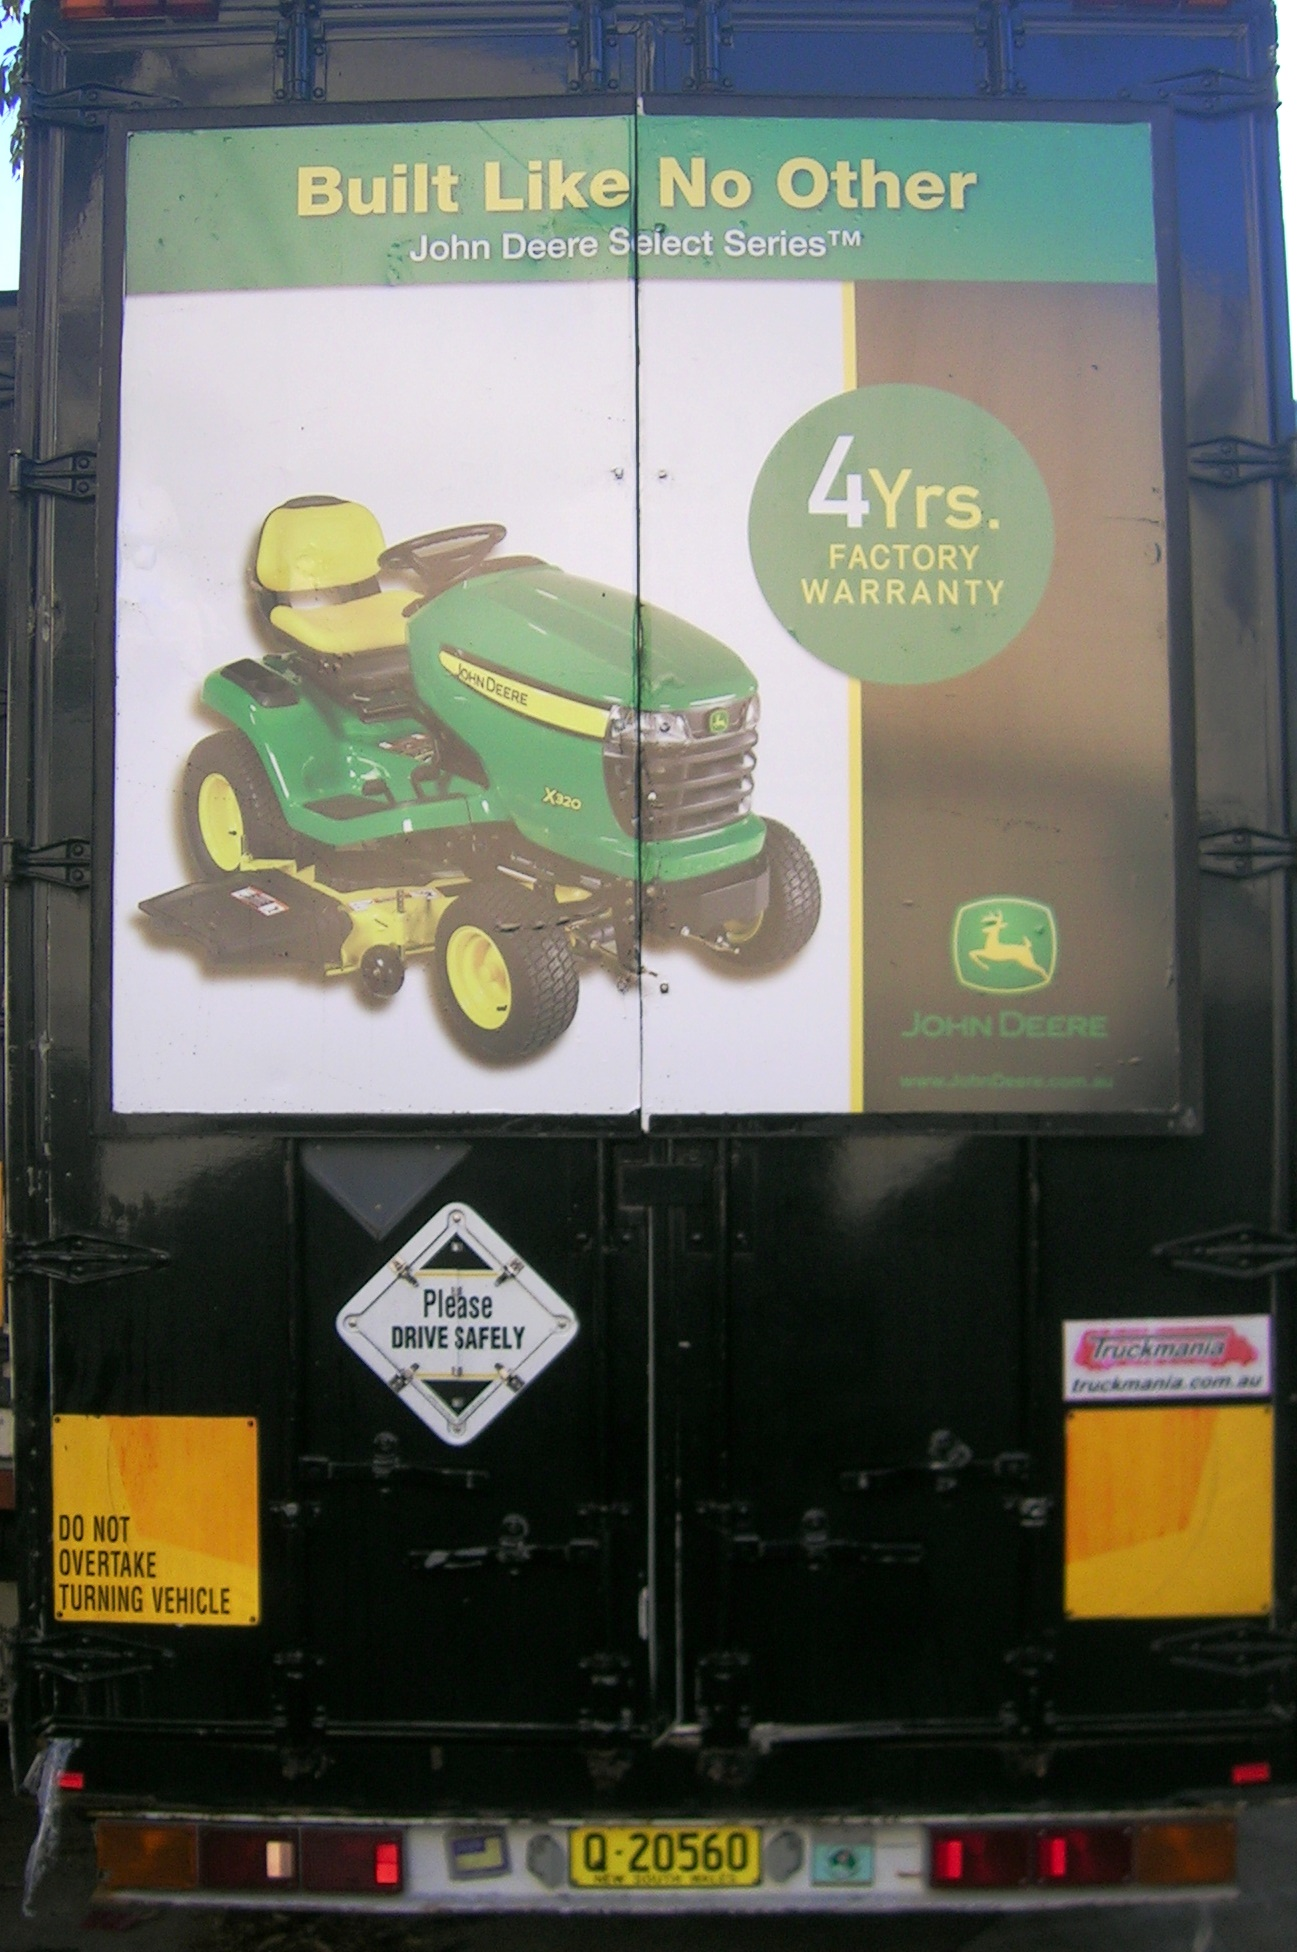 Truck advertising. TruckBack for John Deere Select Series mowers. On First Fleet vehicle. Frames.